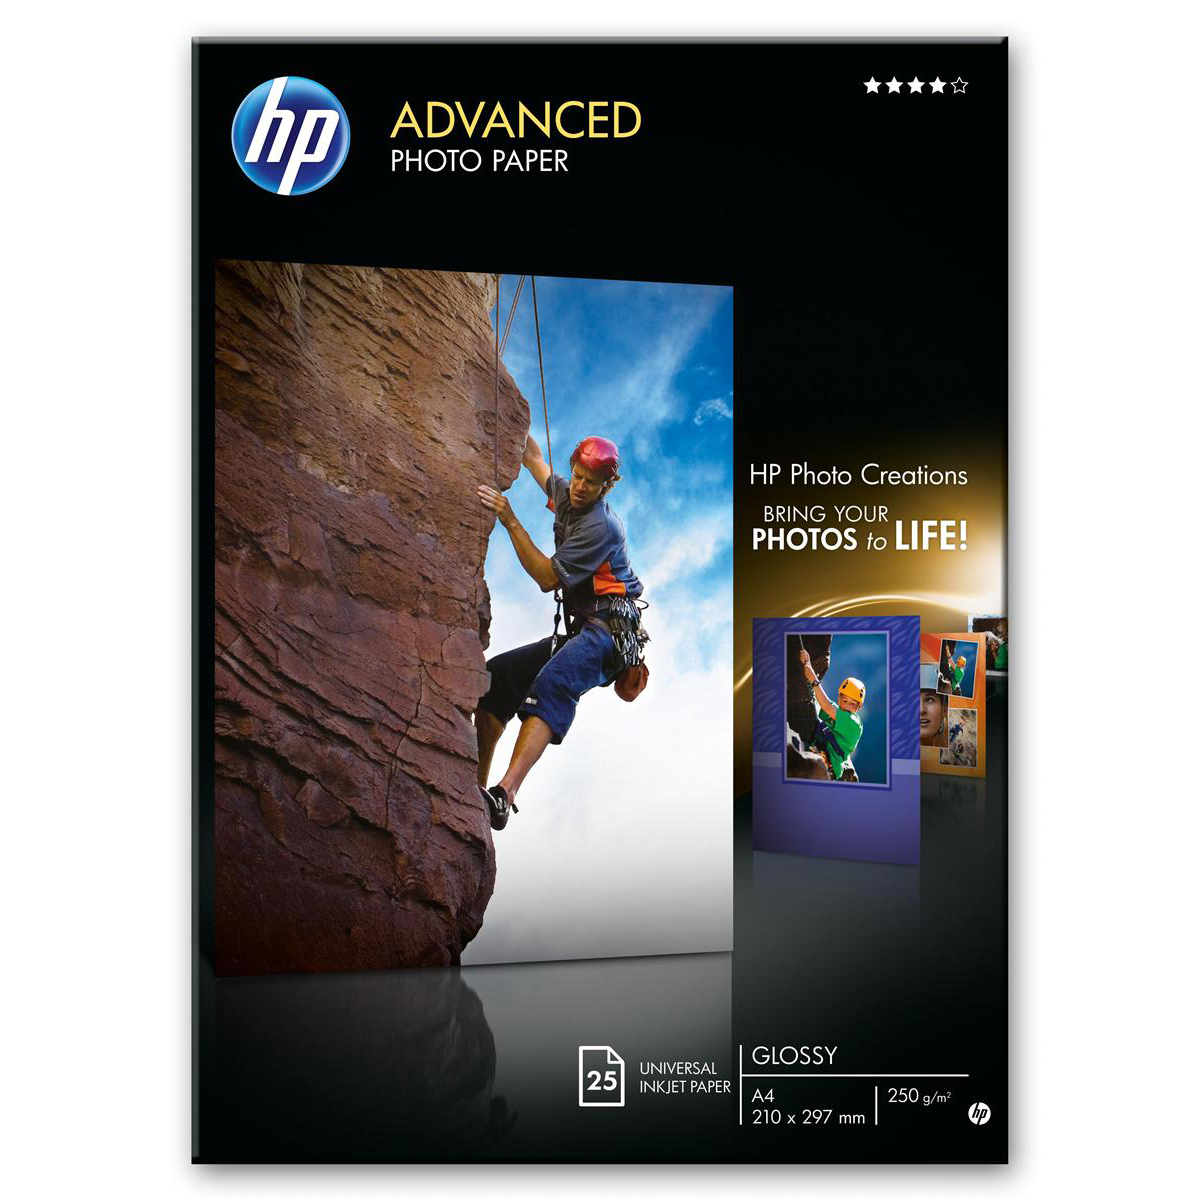 Hewlett Packard [HP] Advanced Photo Paper Gloss 250gsm 130x180mm Ref Q8696A [25 sheets]